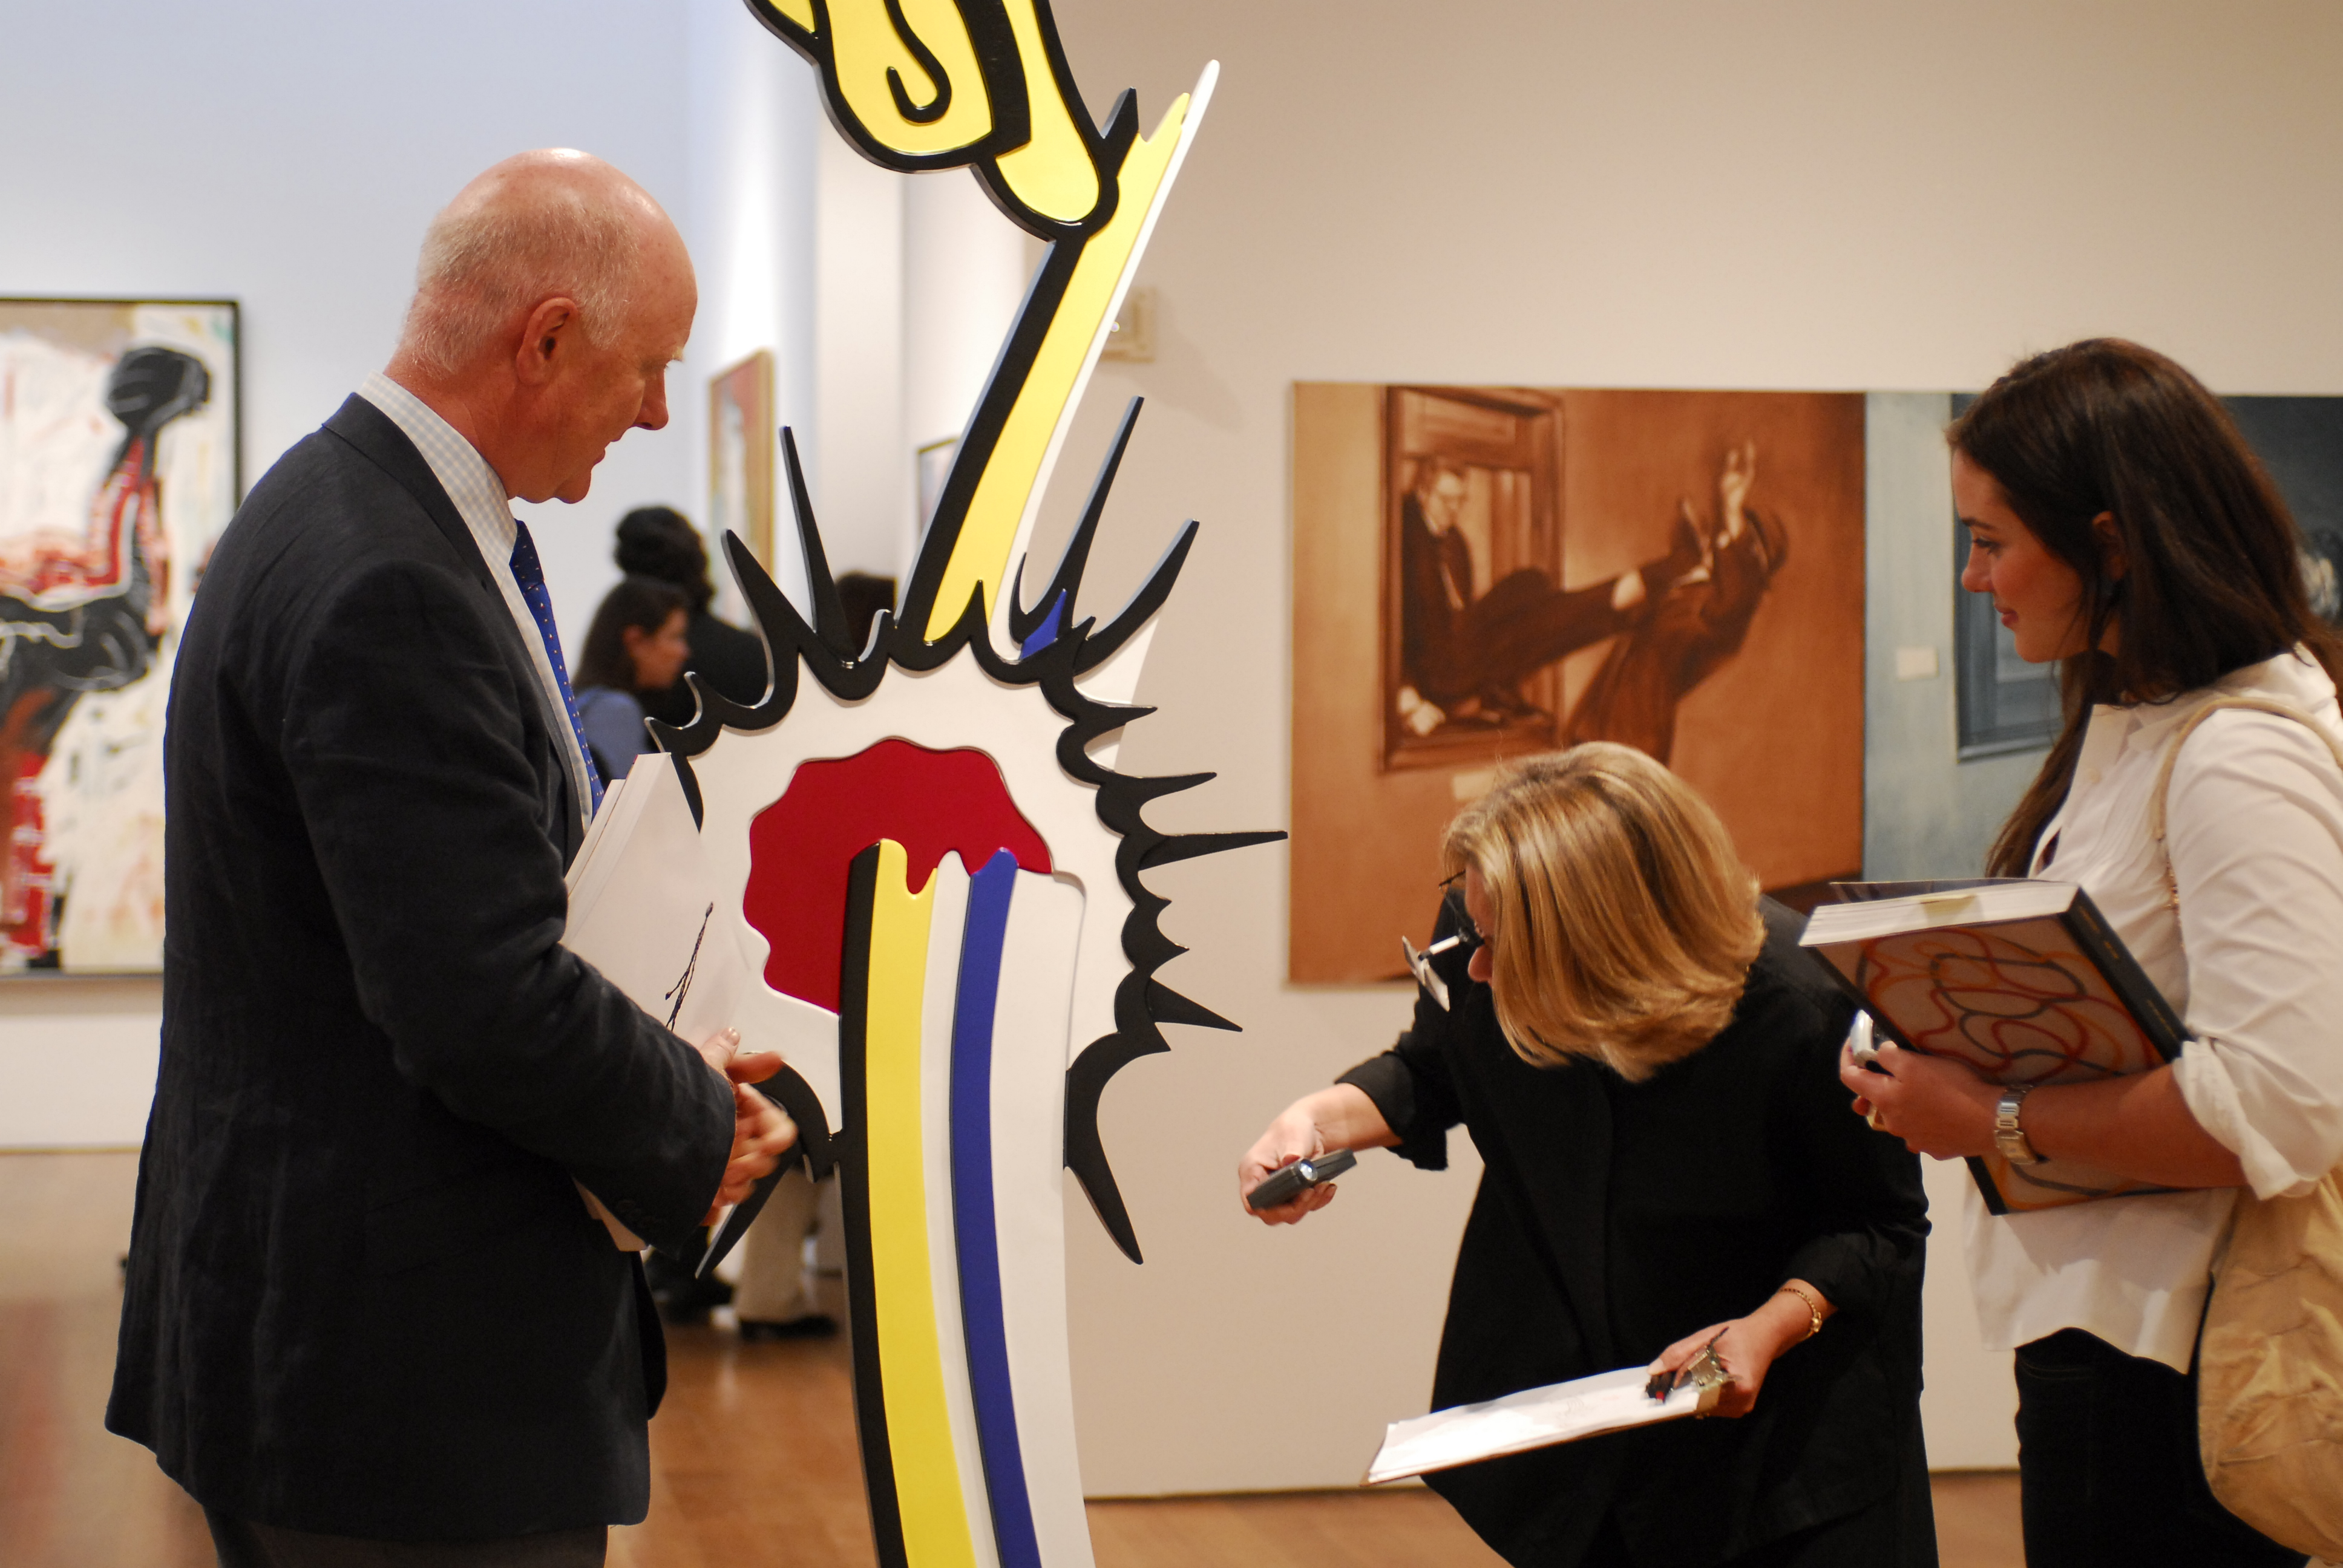 Ray Waterhouse examining a Roy Lichtenstein sculpture for a client